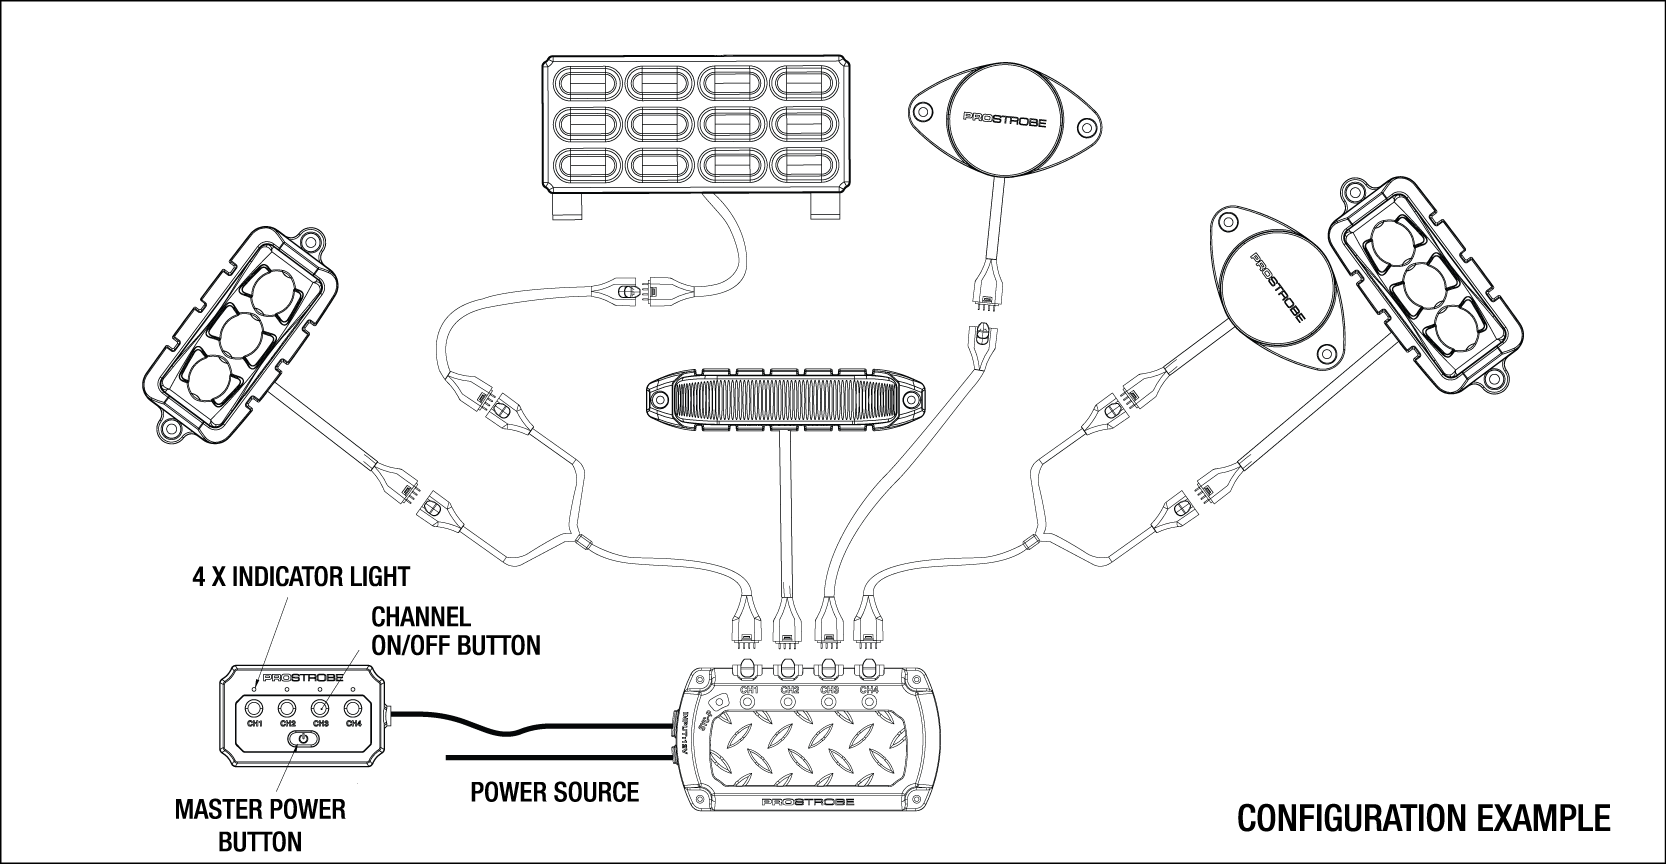 Wired Control Hub Example Configuration Diagram